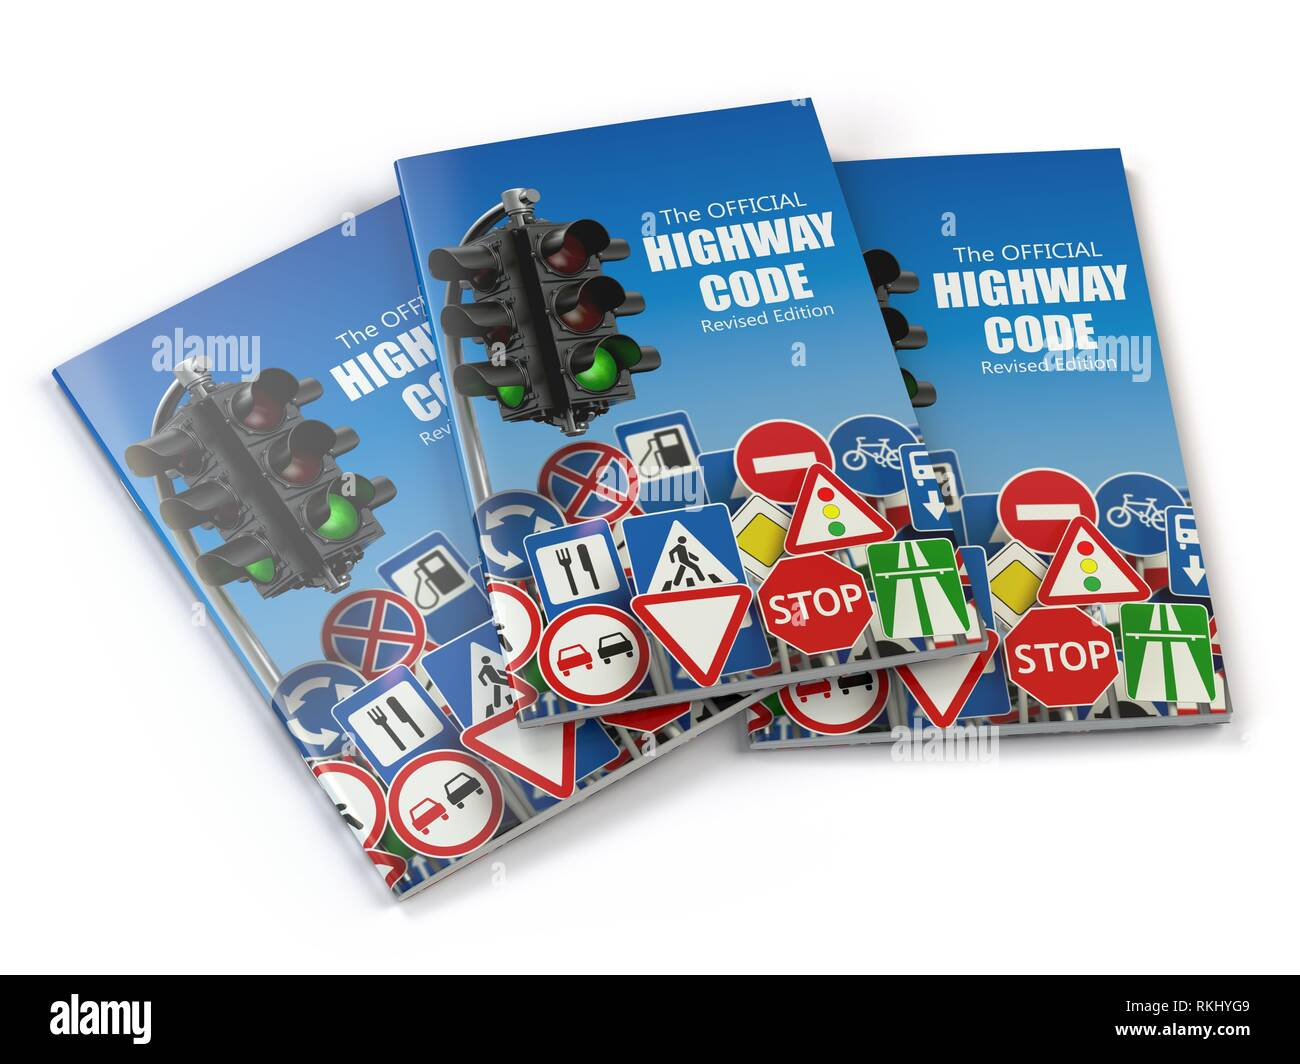 Highway code book. Book of traffic rules and law with traffic road sign and traffic light. Preparation for exam or driving test concept. 3d - Stock Image